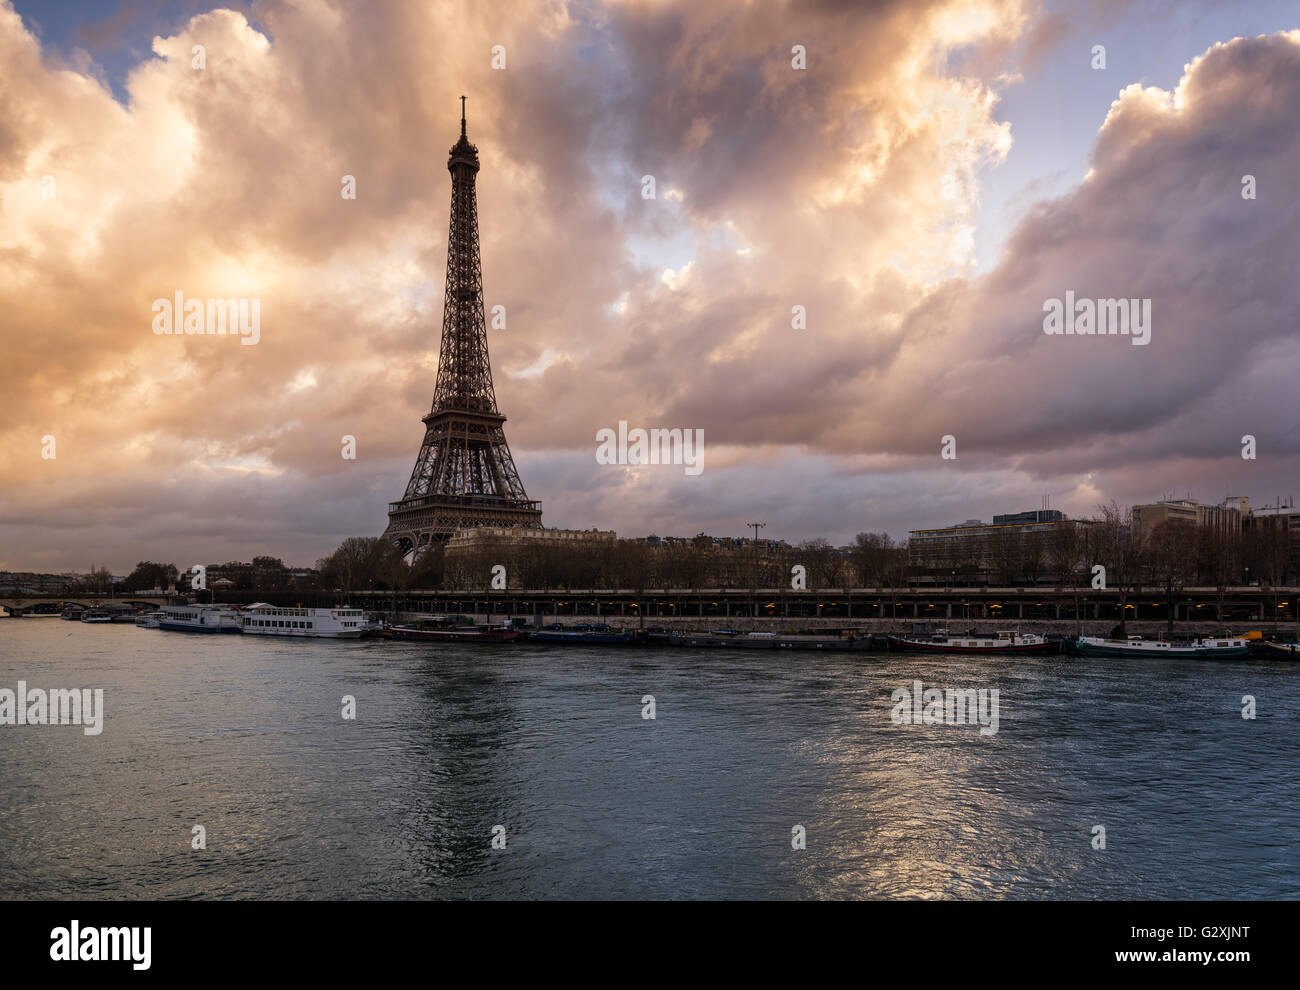 Luminous clouds the Eiffel Tower and the Seine River at sunrise. Port de Suffren, Paris, France - Stock Image